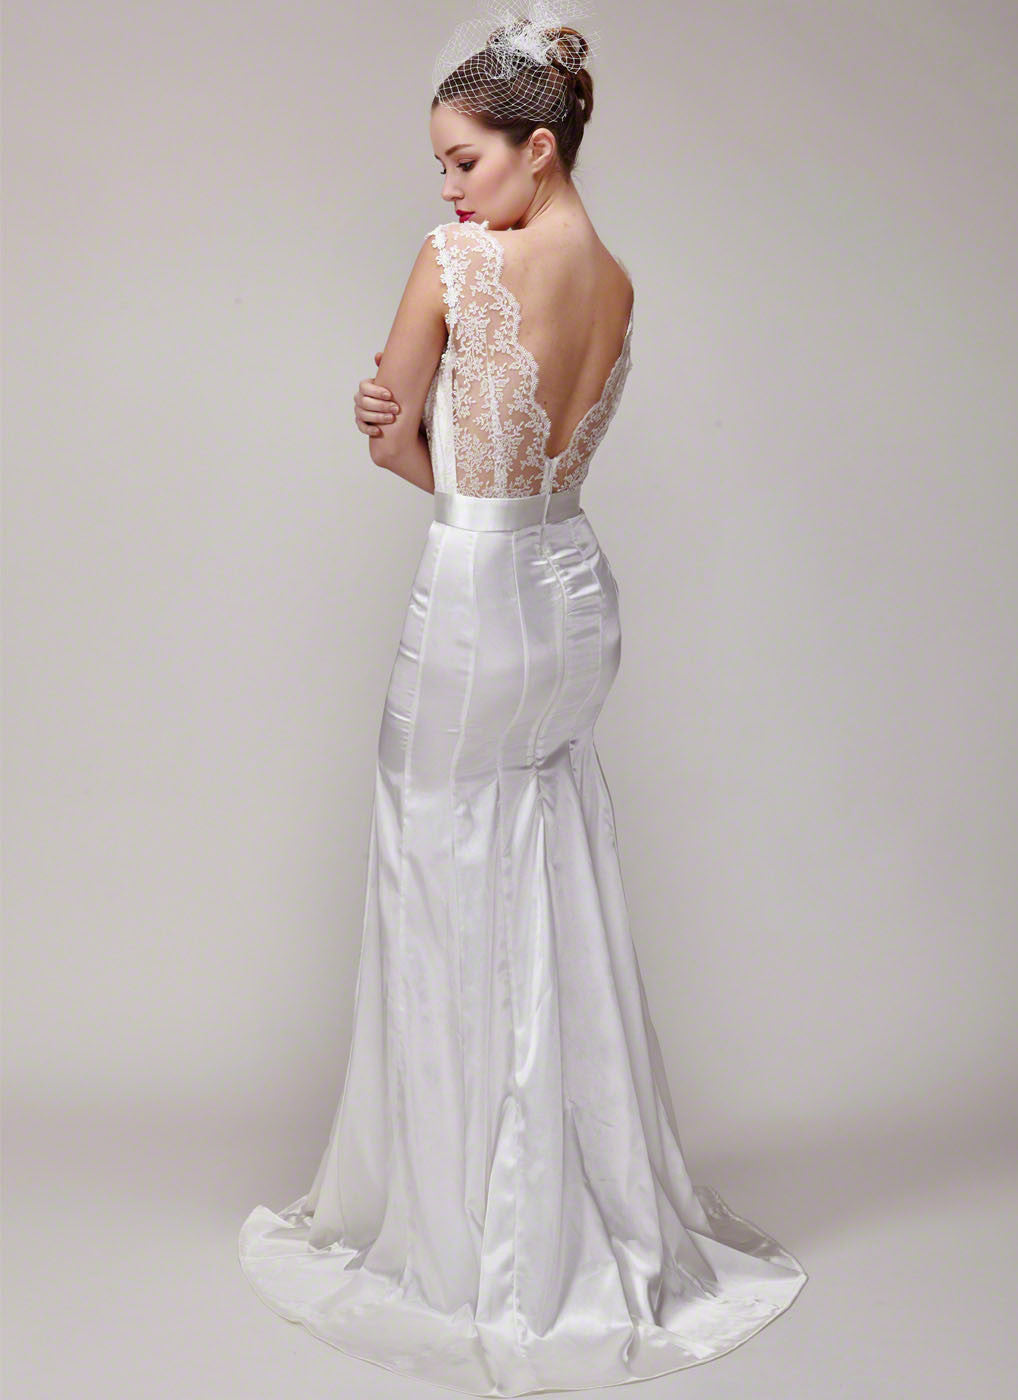 Deep V Back White Lace Satin Mermaid Silhouette Wedding Dress Evening Gown